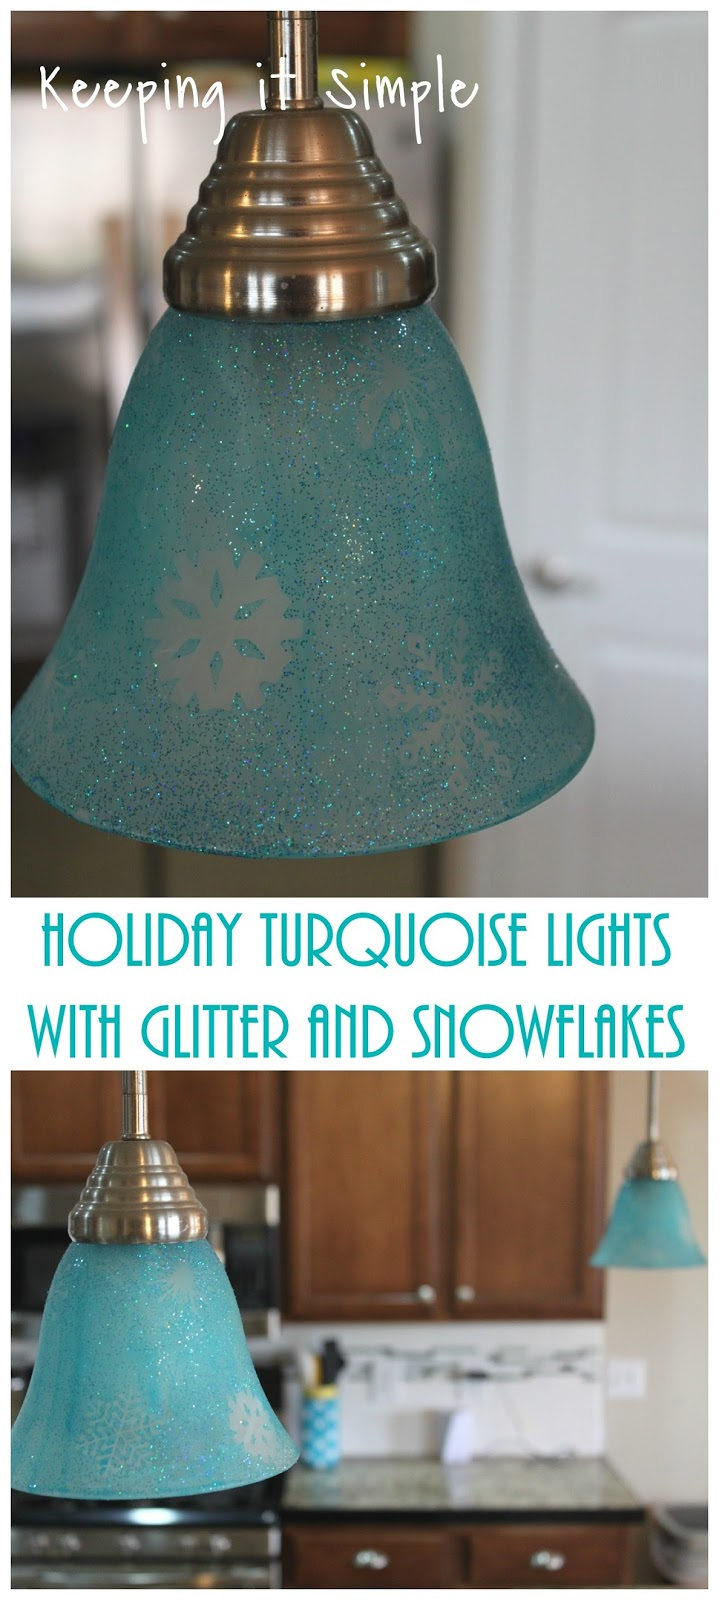 Holiday turquoise lights with glitter and snowflakes keeping it simple holiday turquoise lights with glitter and snowflakes aloadofball Choice Image